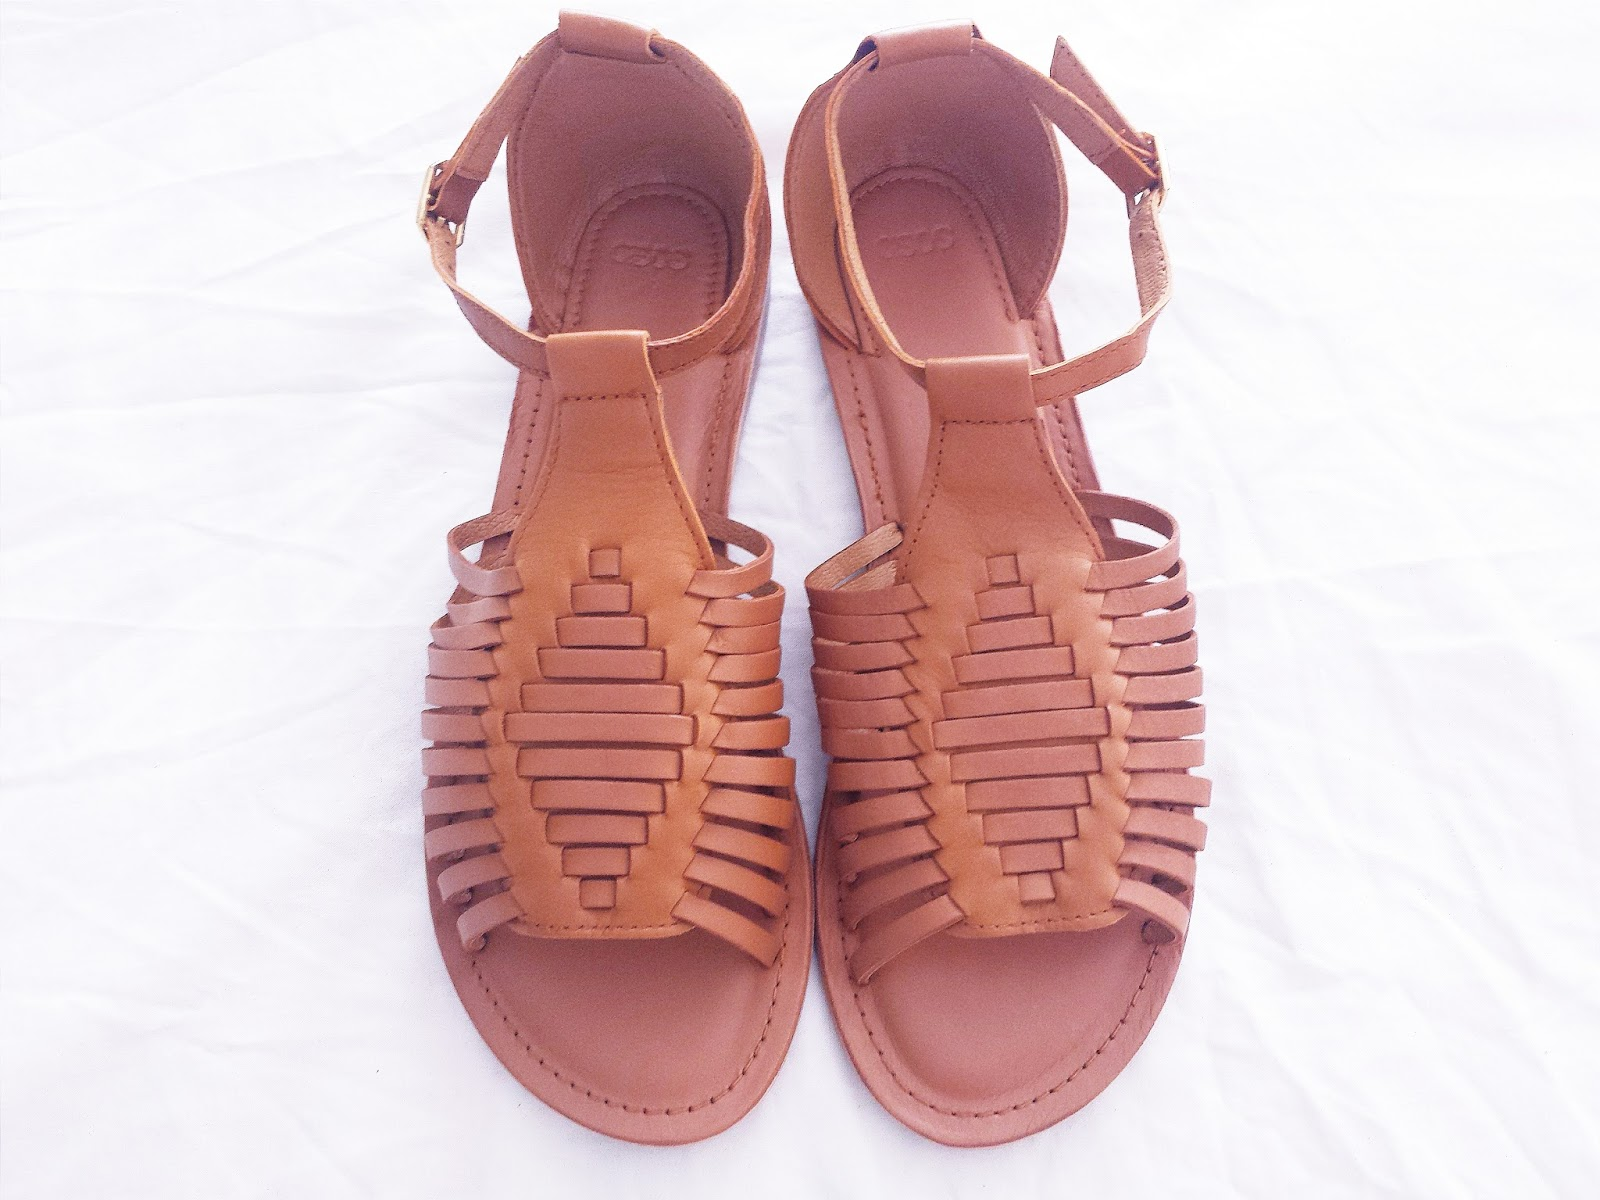 ASOS Tan Fumble Gladiator Sandals